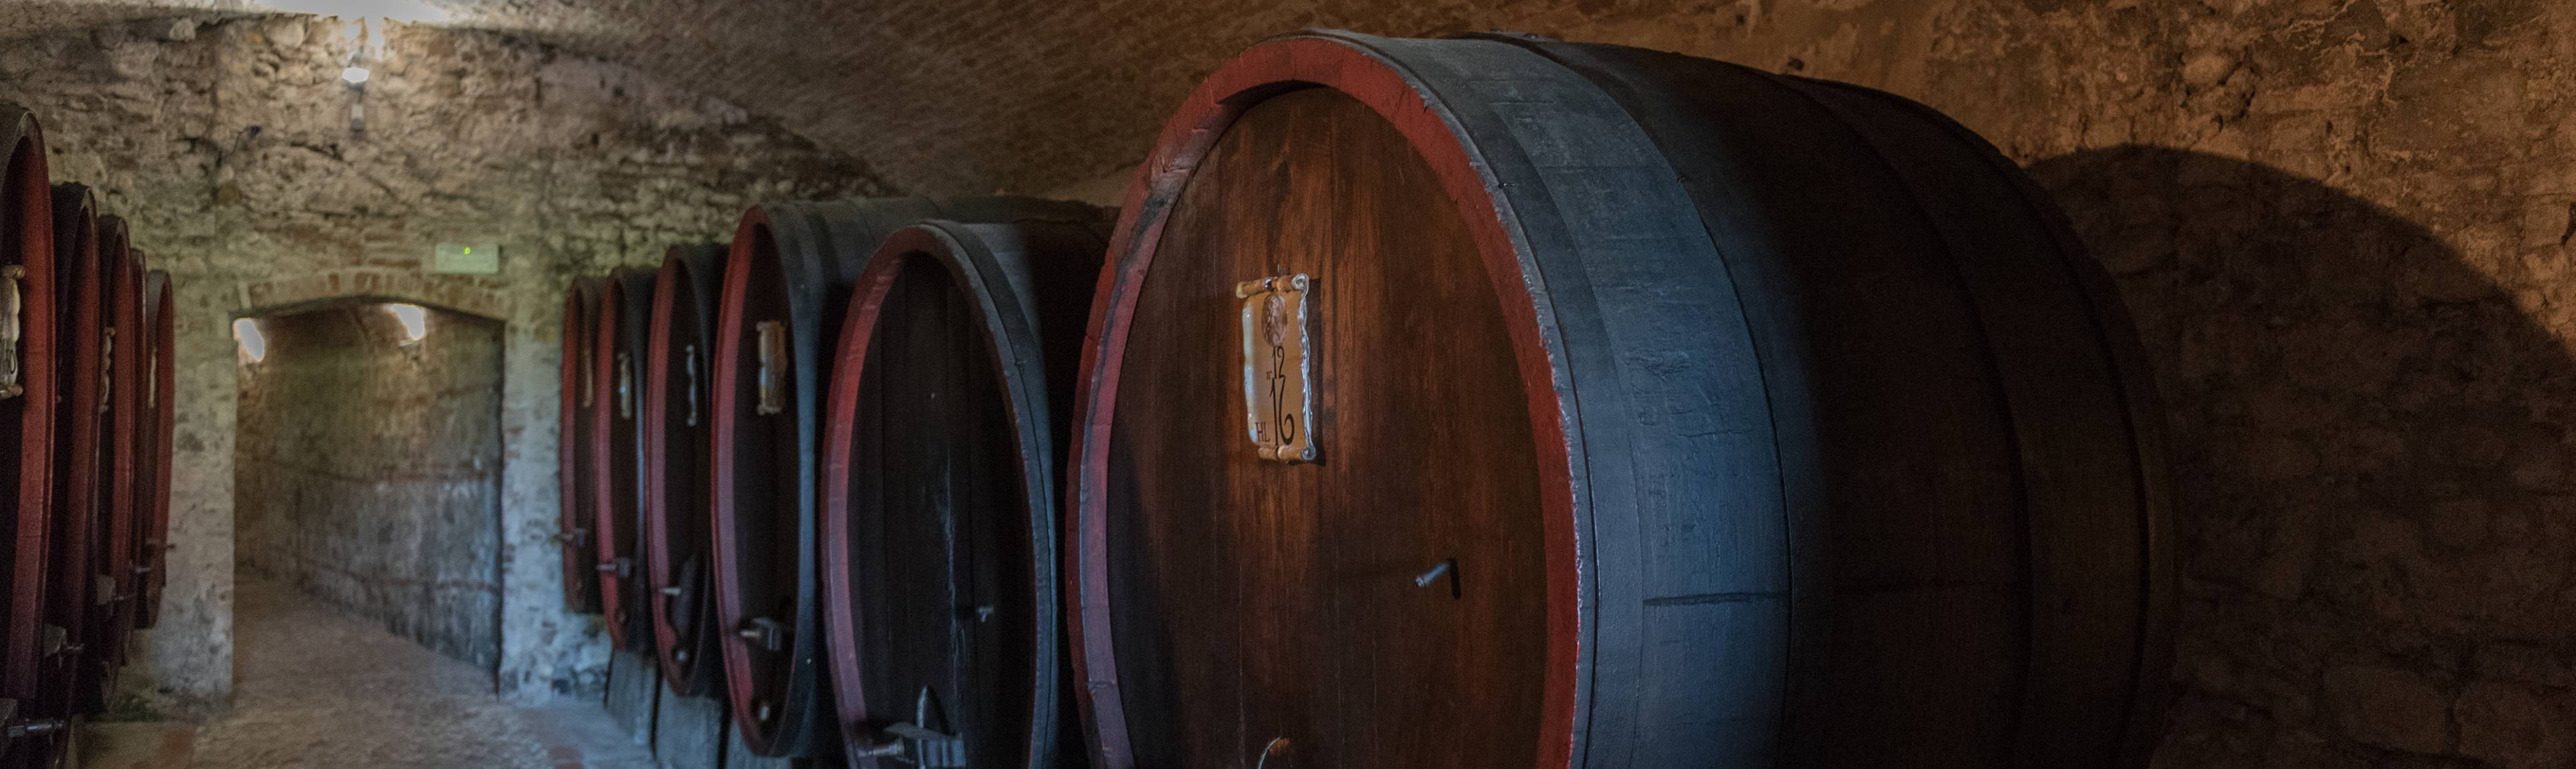 Wooden wine barrels line the cellar at Castello Banfi Wine estate